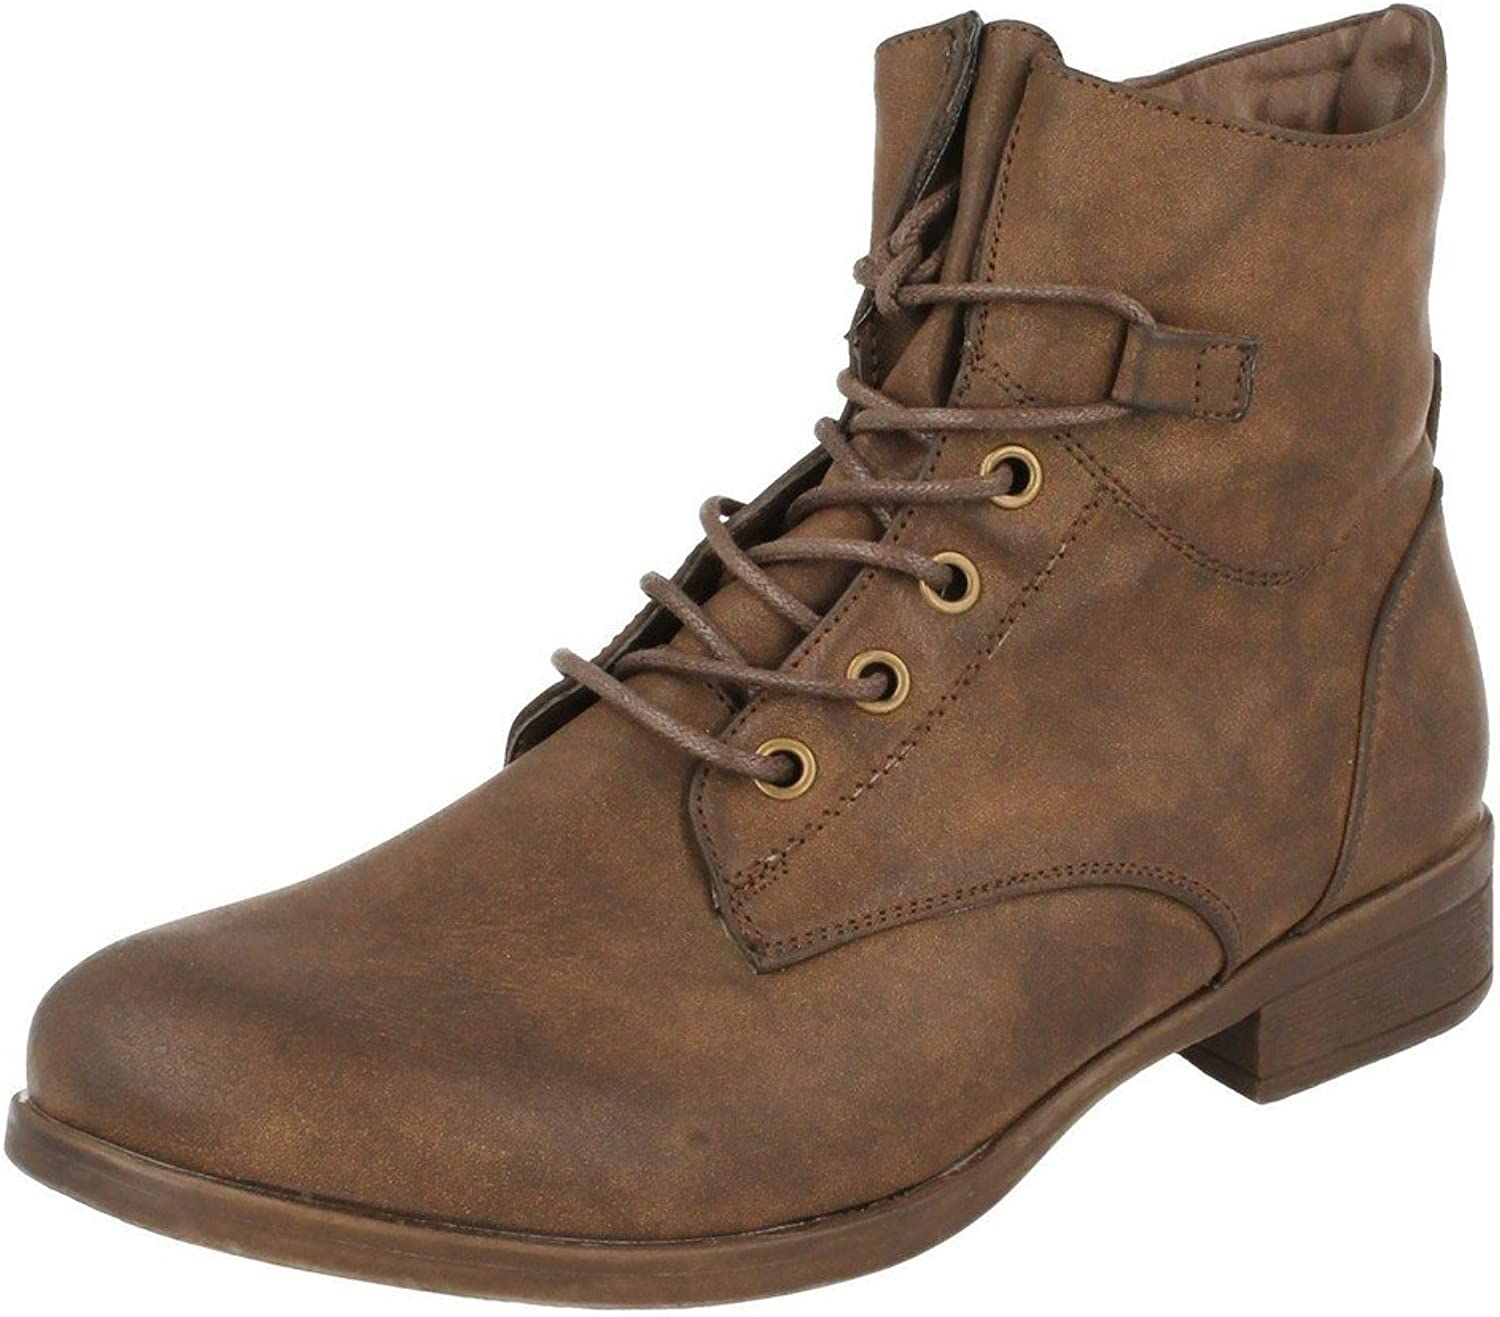 Spot On Womens Ladies Military Style Lace Up Ankle Boots